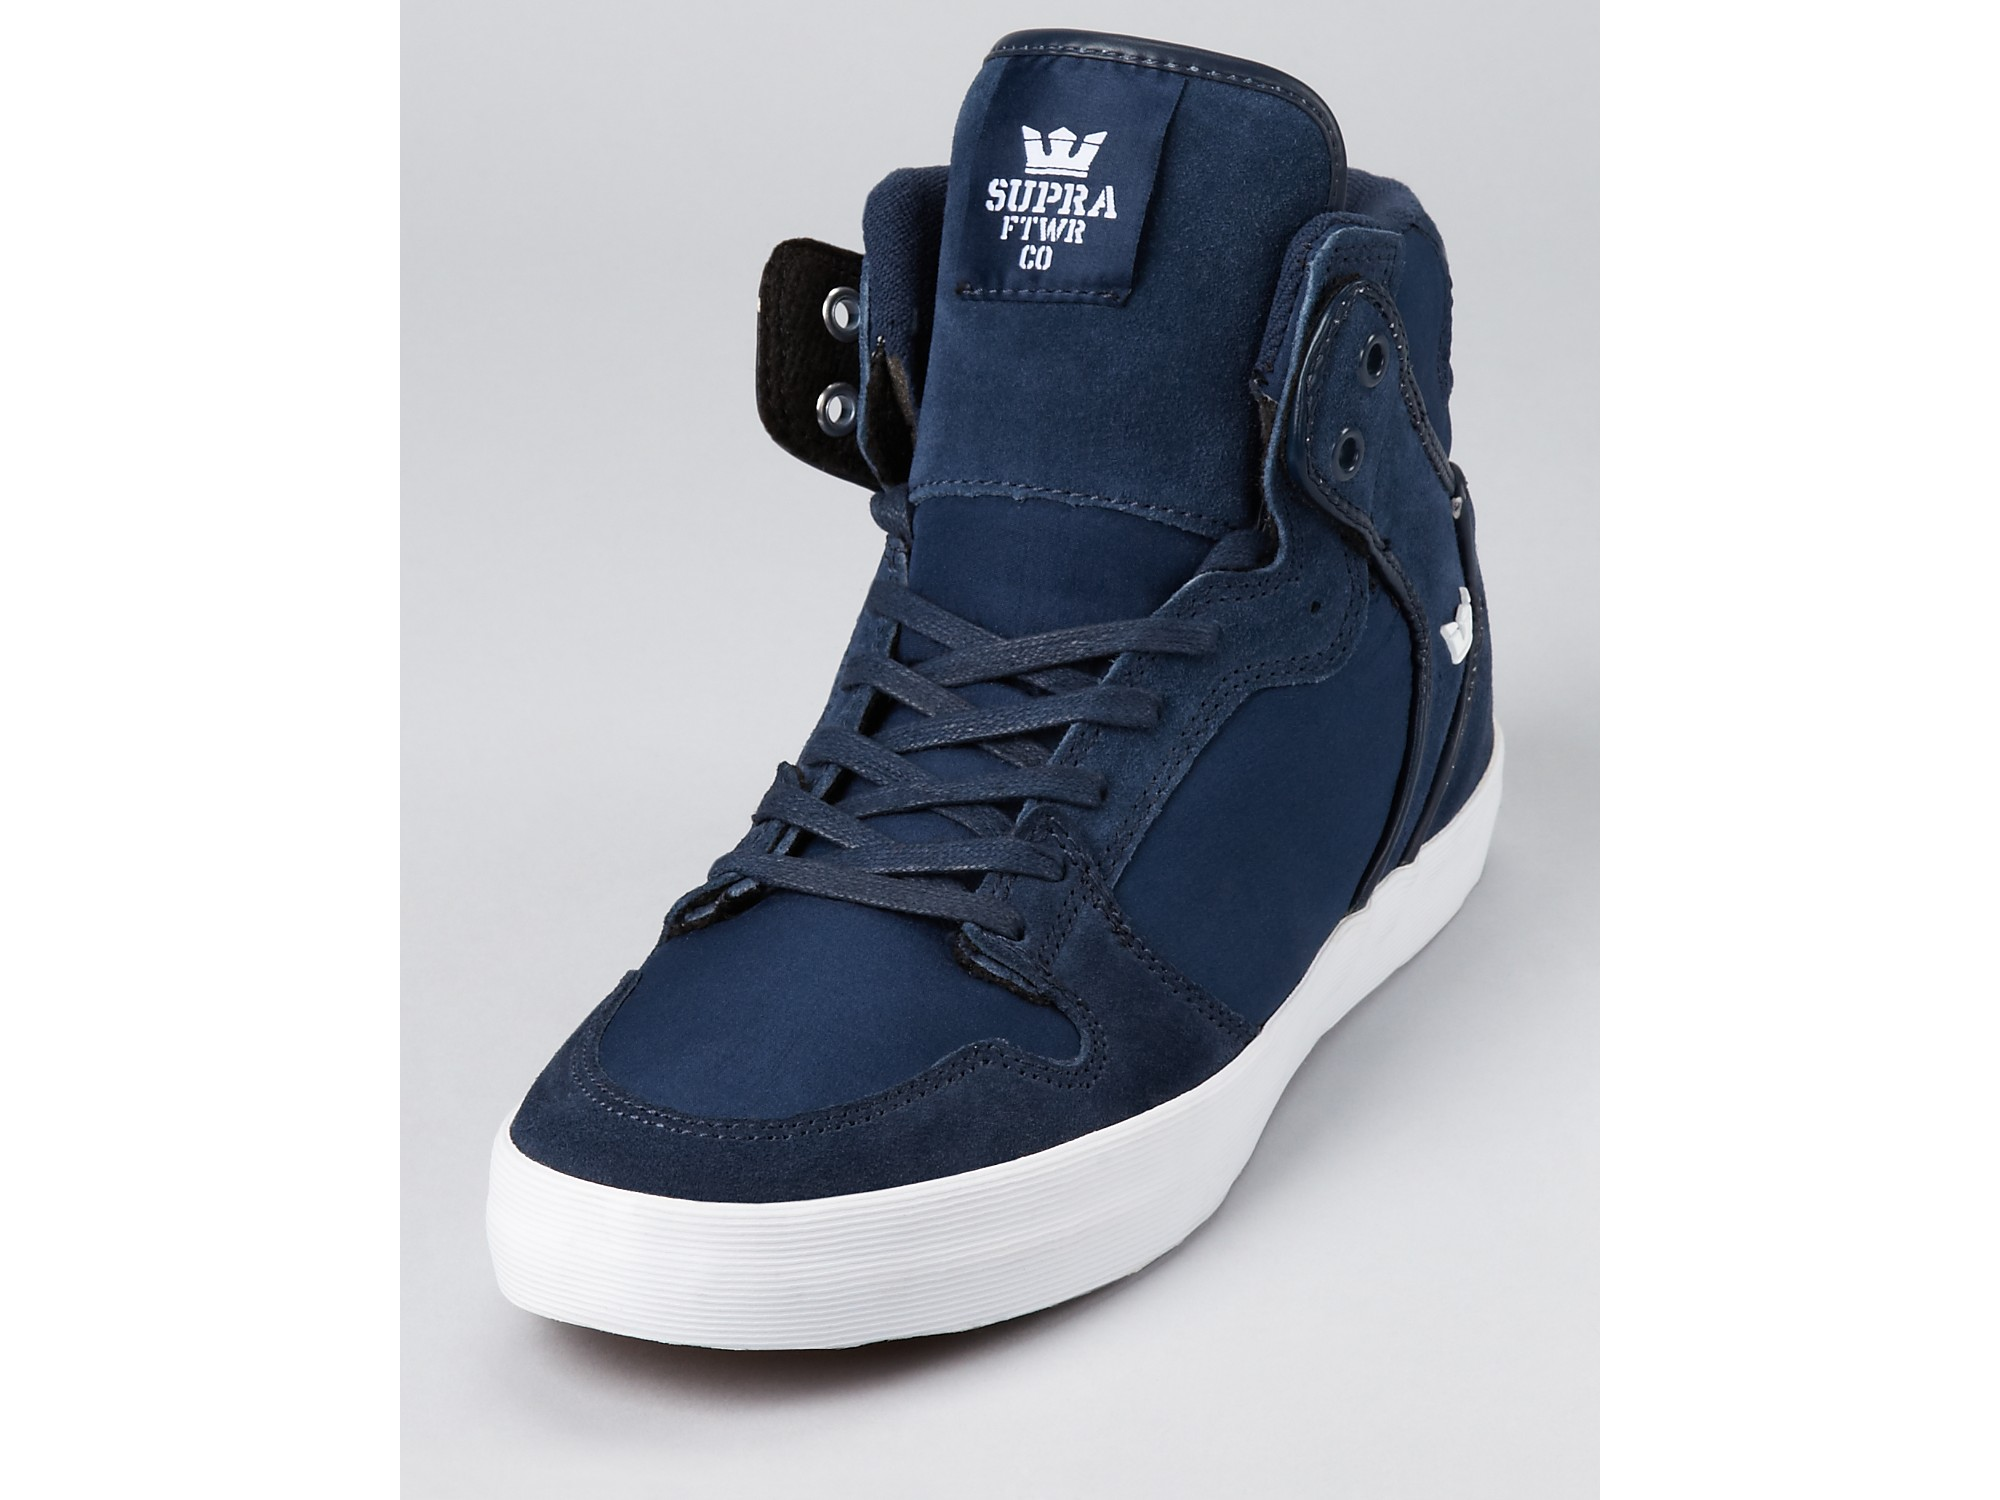 9eb493b3a0b6 Lyst - Supra Vaider High Top Casual Sneakers in Blue for Men